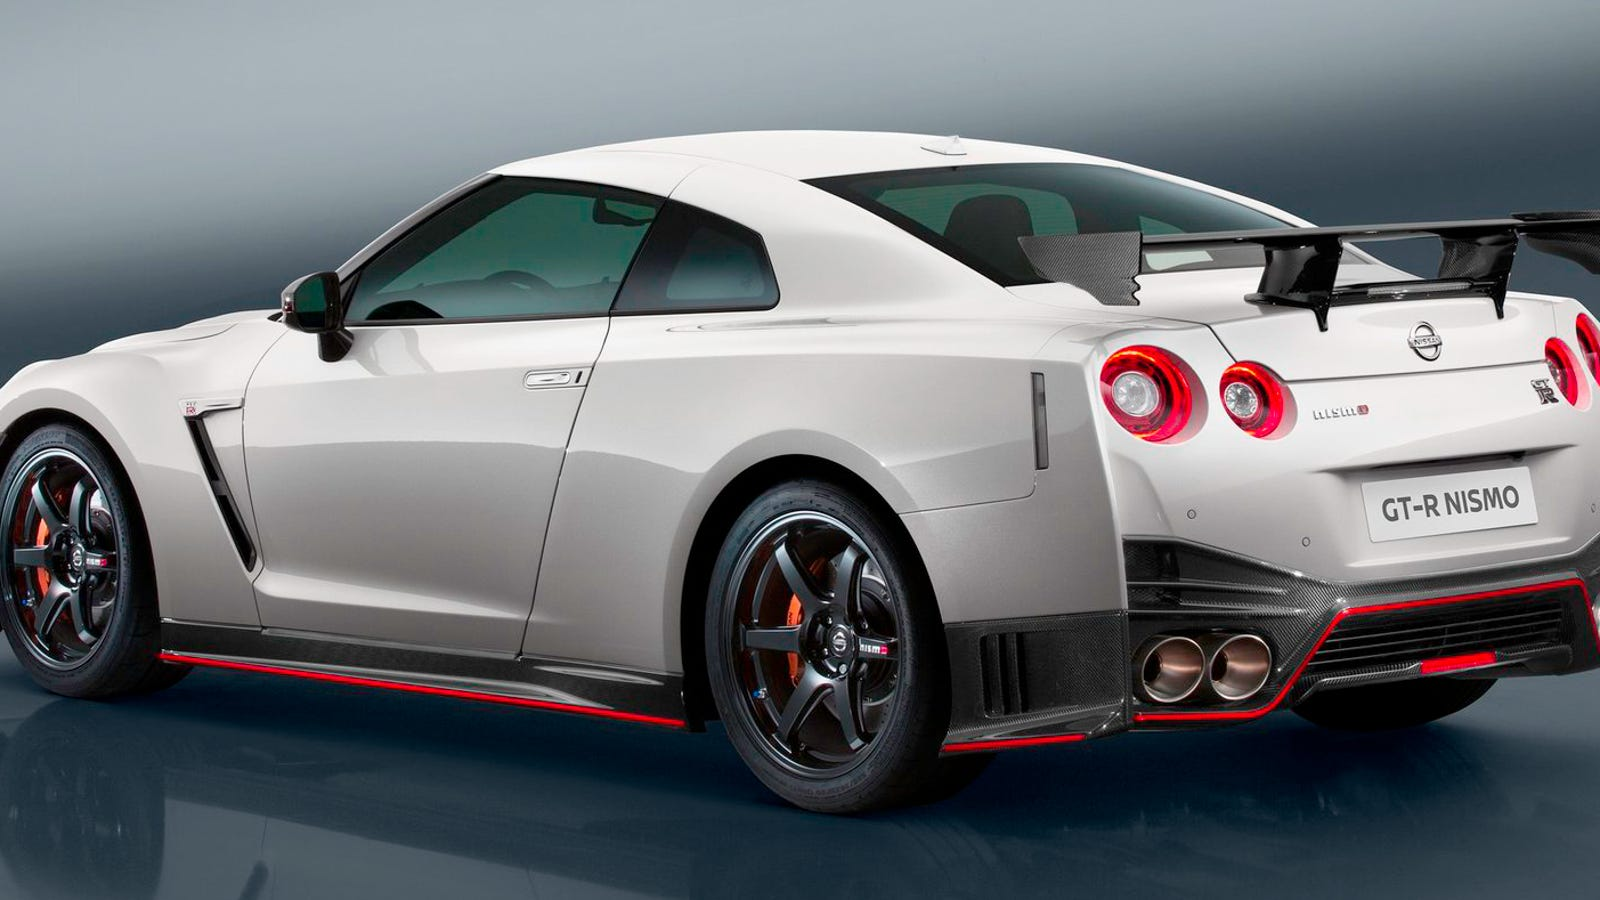 the 2017 nissan gt-r nismo is now $100,000 more expensive than the